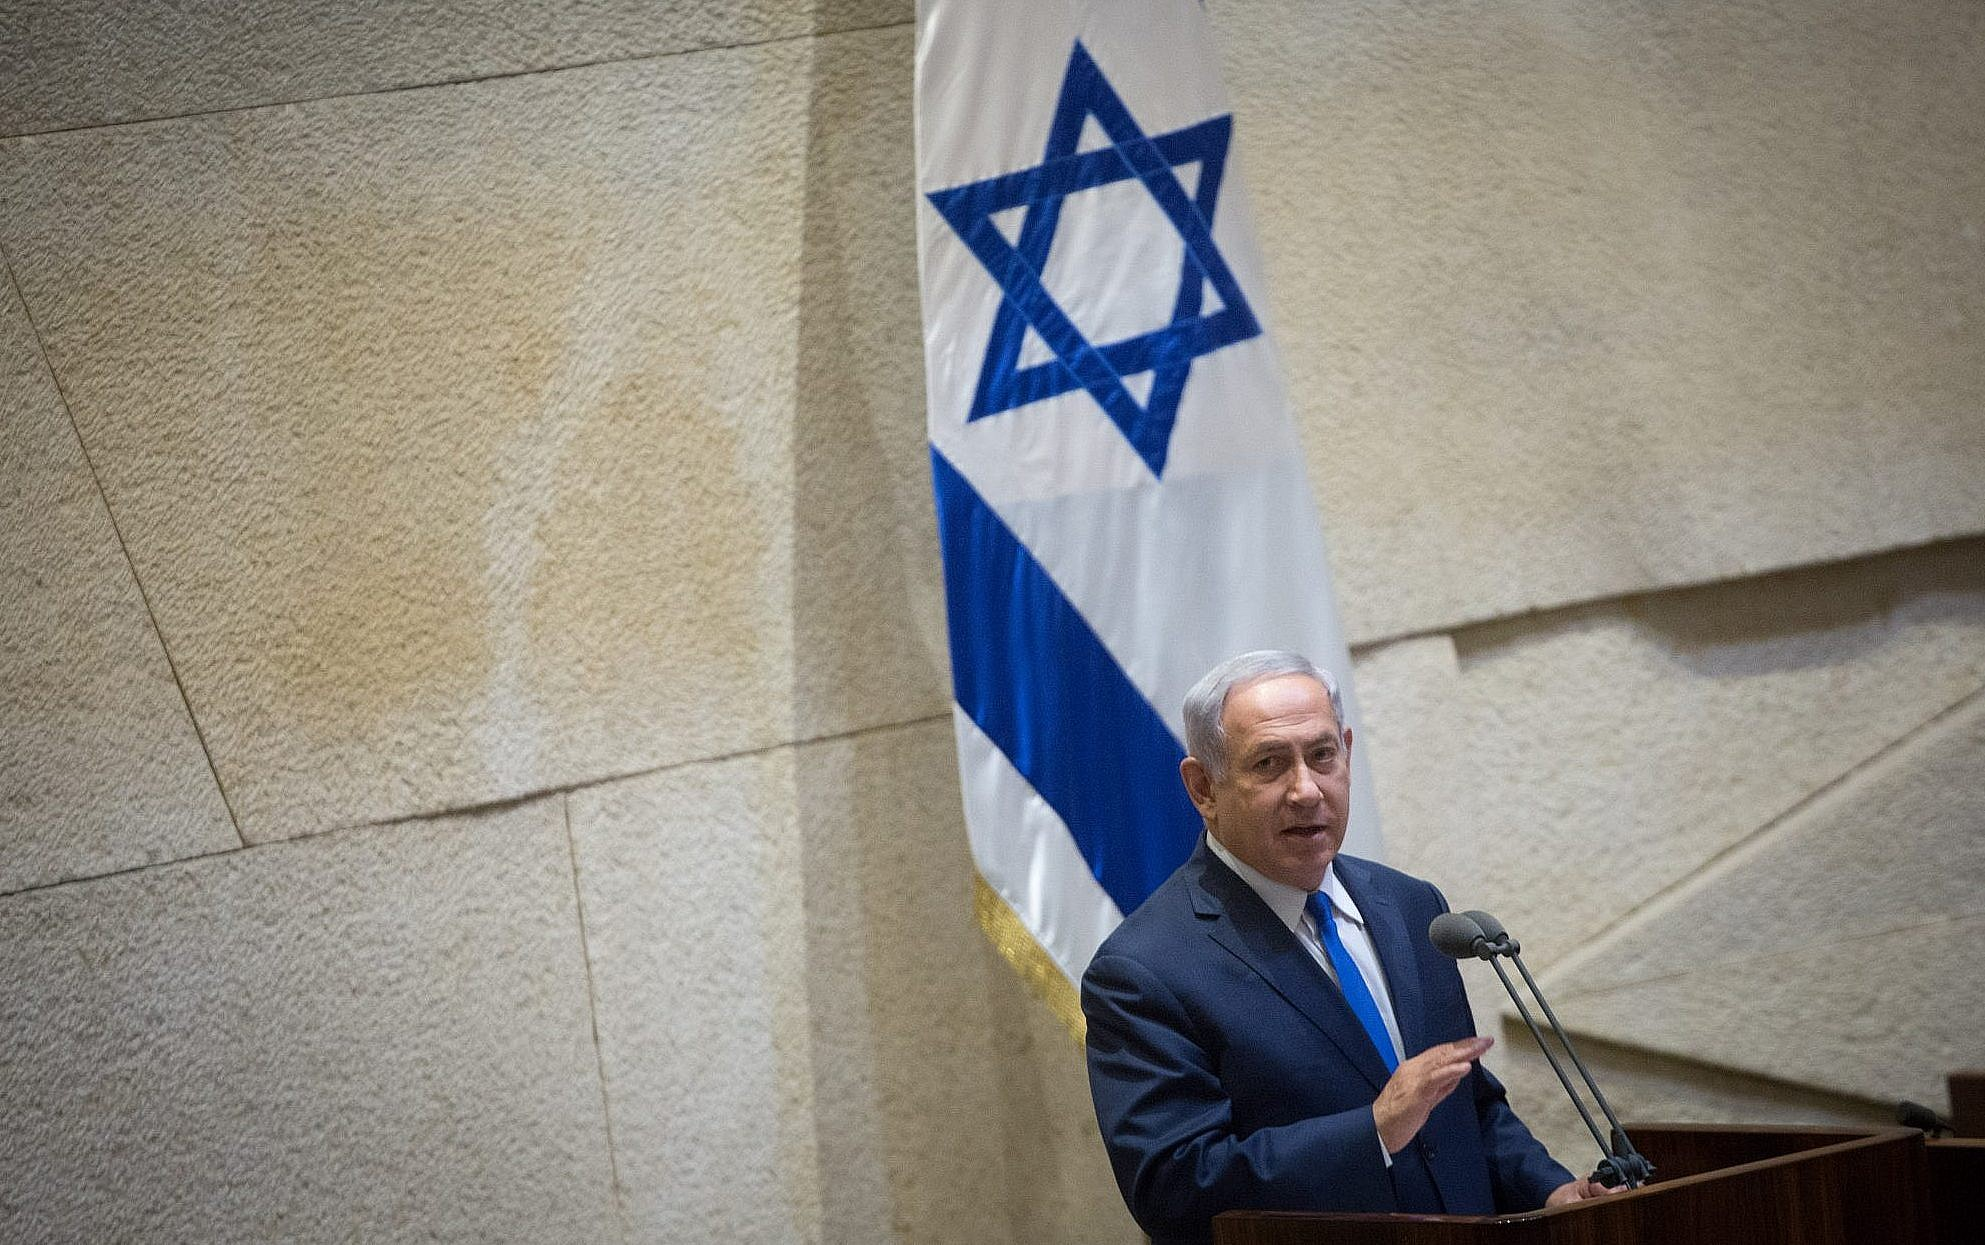 Netanyahu signals Gaza militant bodies to be bargaining chips